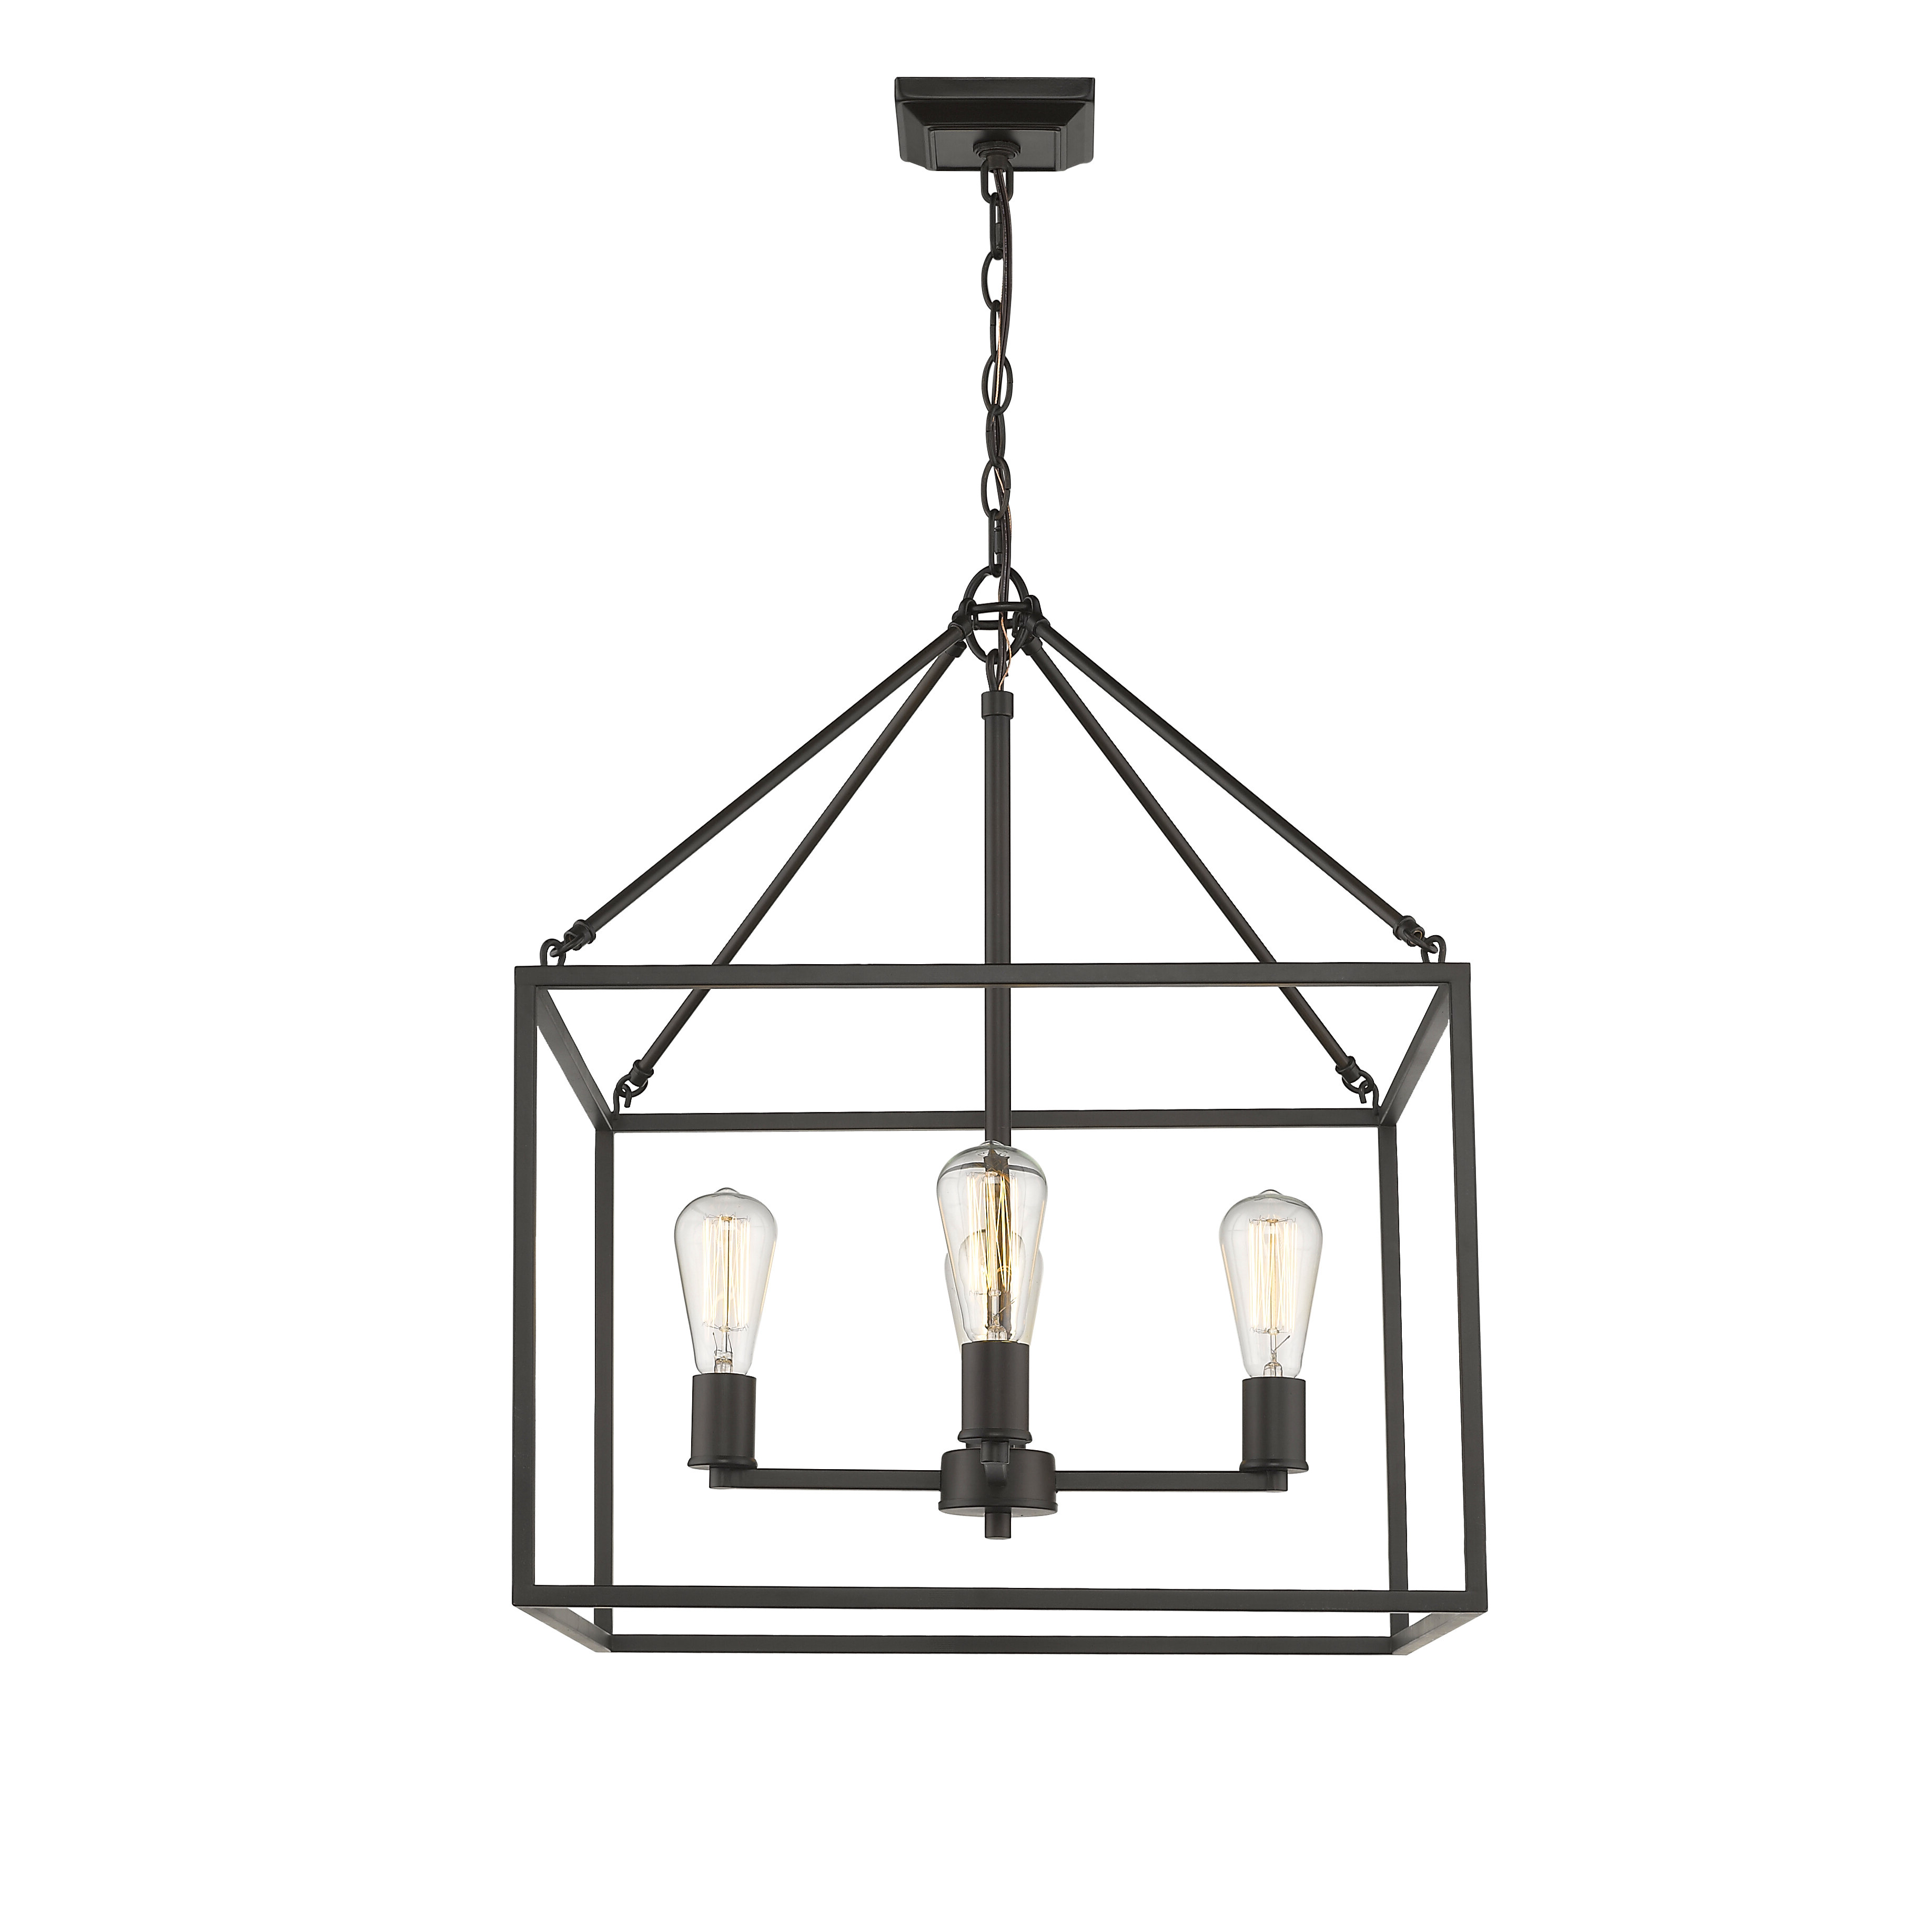 Odie 4 Light Lantern Square Pendants Throughout Most Recent Zabel 4 Light Lantern Square / Rectangle Pendant (View 7 of 20)